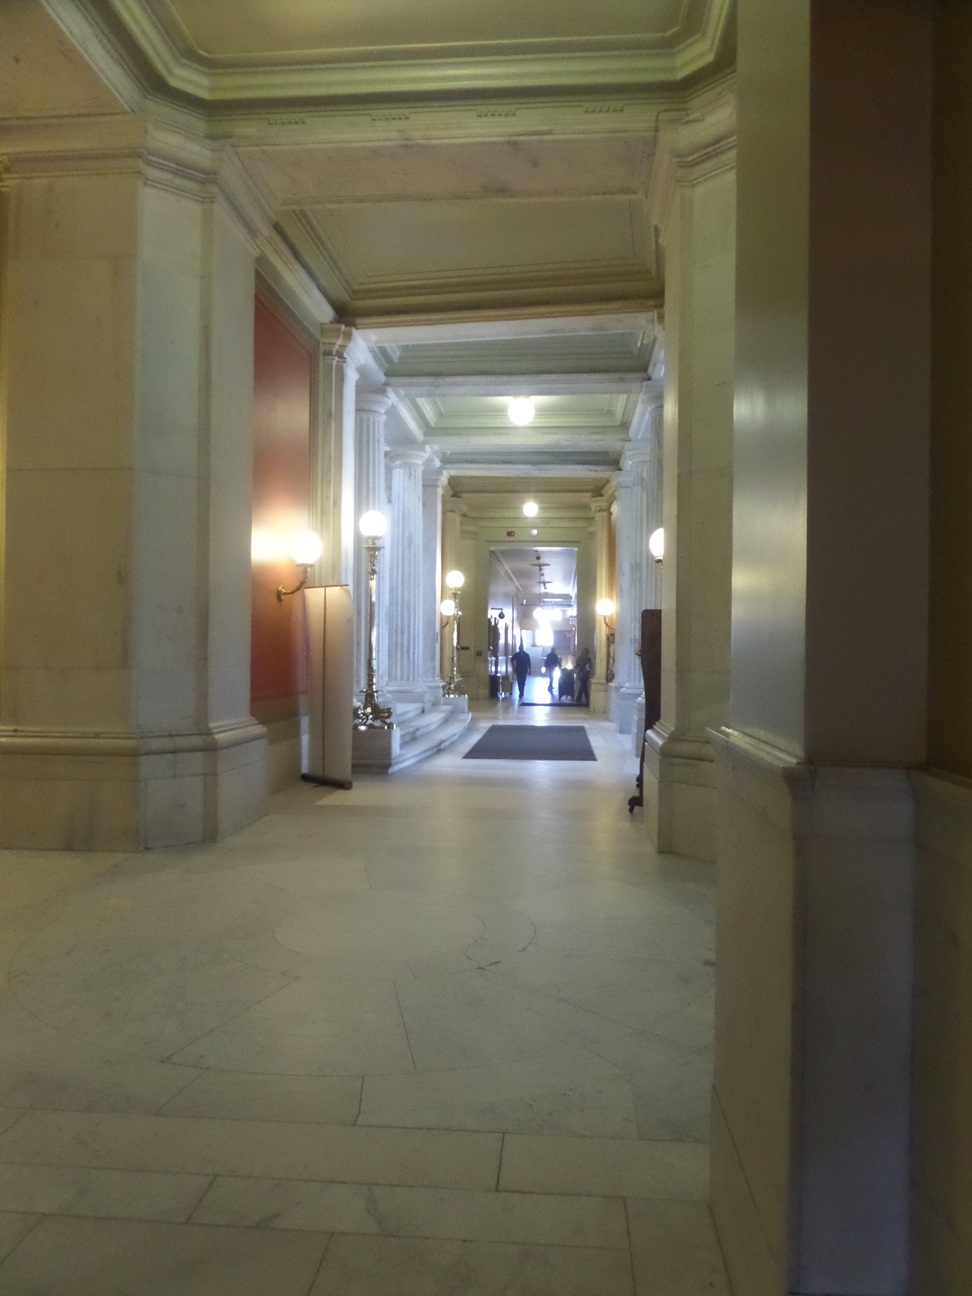 Completed in 1902, the State House is filled with marble.